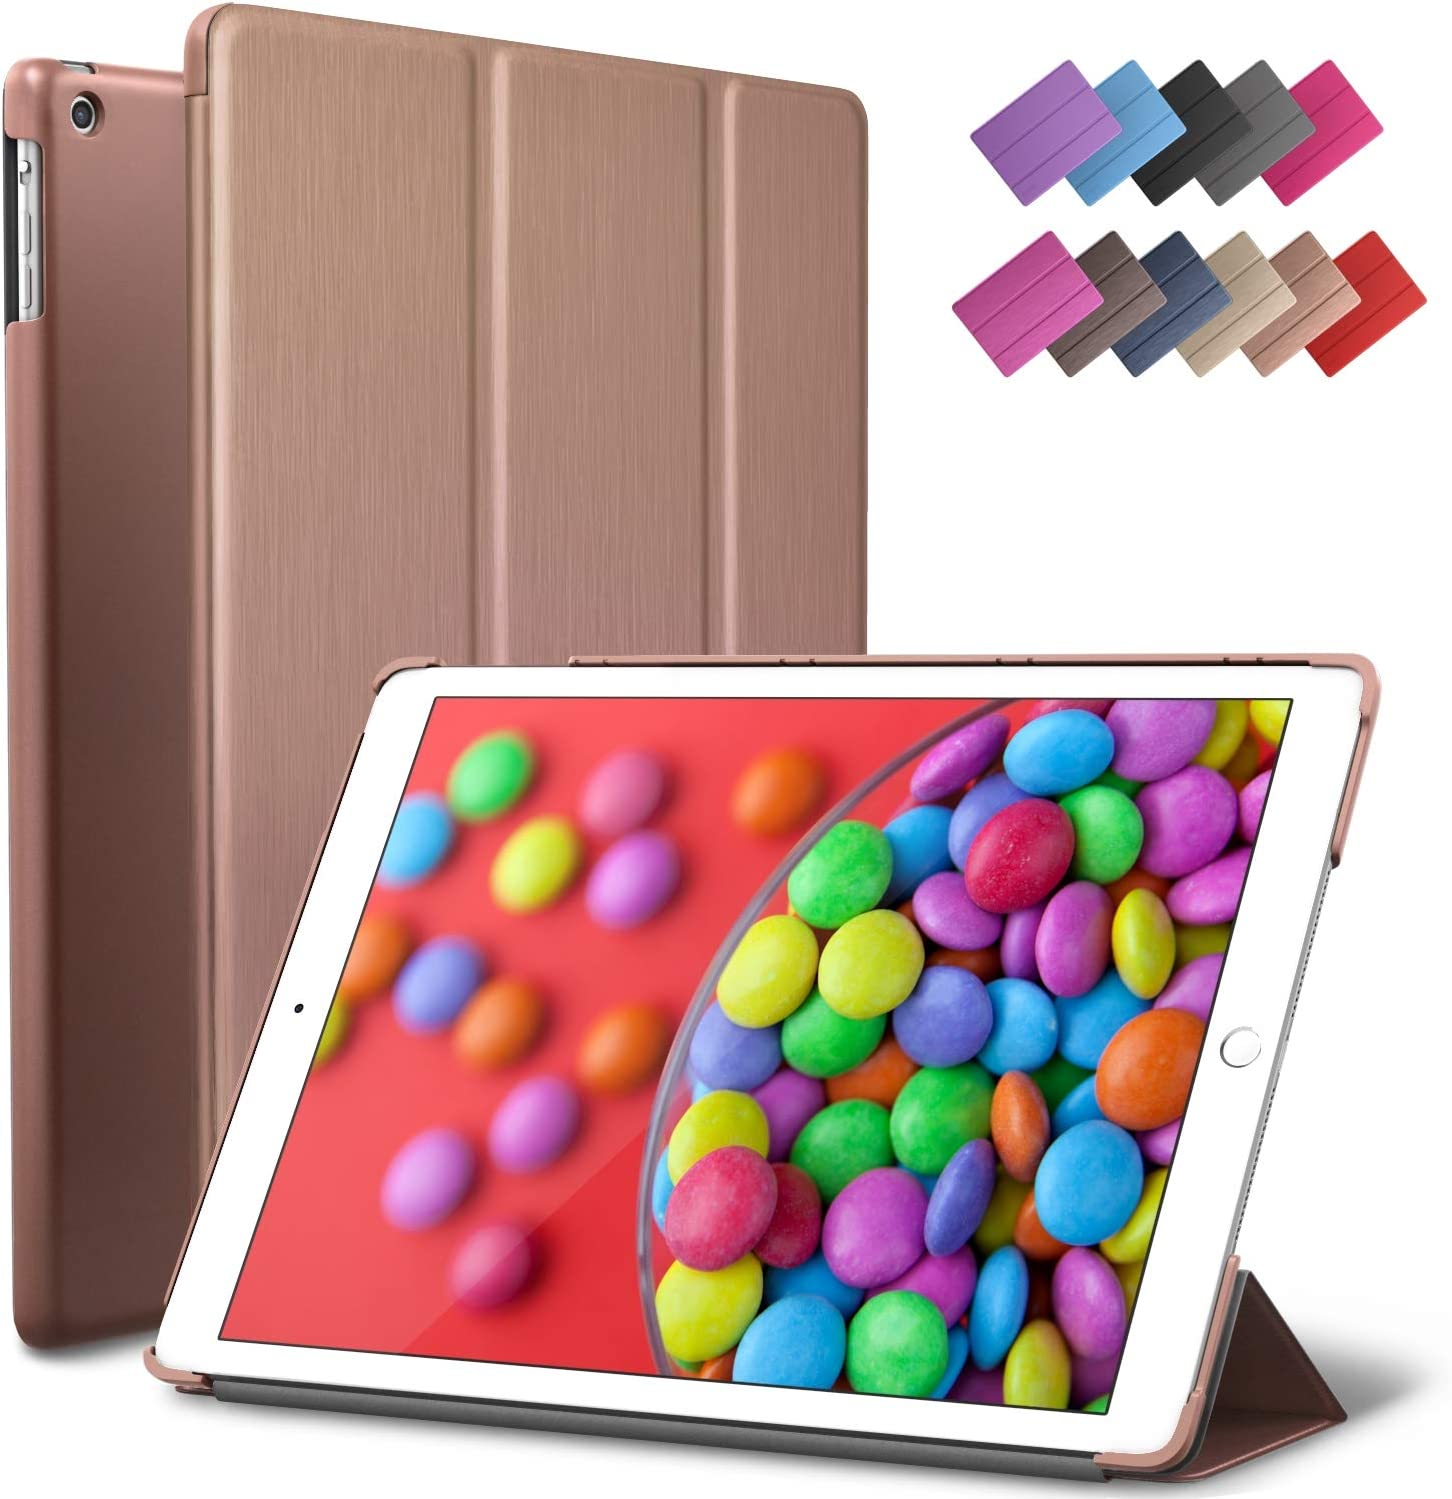 ROARTZ iPad Air Case, Rose Gold Slim Fit Smart Rubber Coated Folio Case Hard Shell Cover Light-Weight Auto Wake/Sleep for Apple iPad Air 1st Generation Model A1474/A1475/A1476 Retina Display